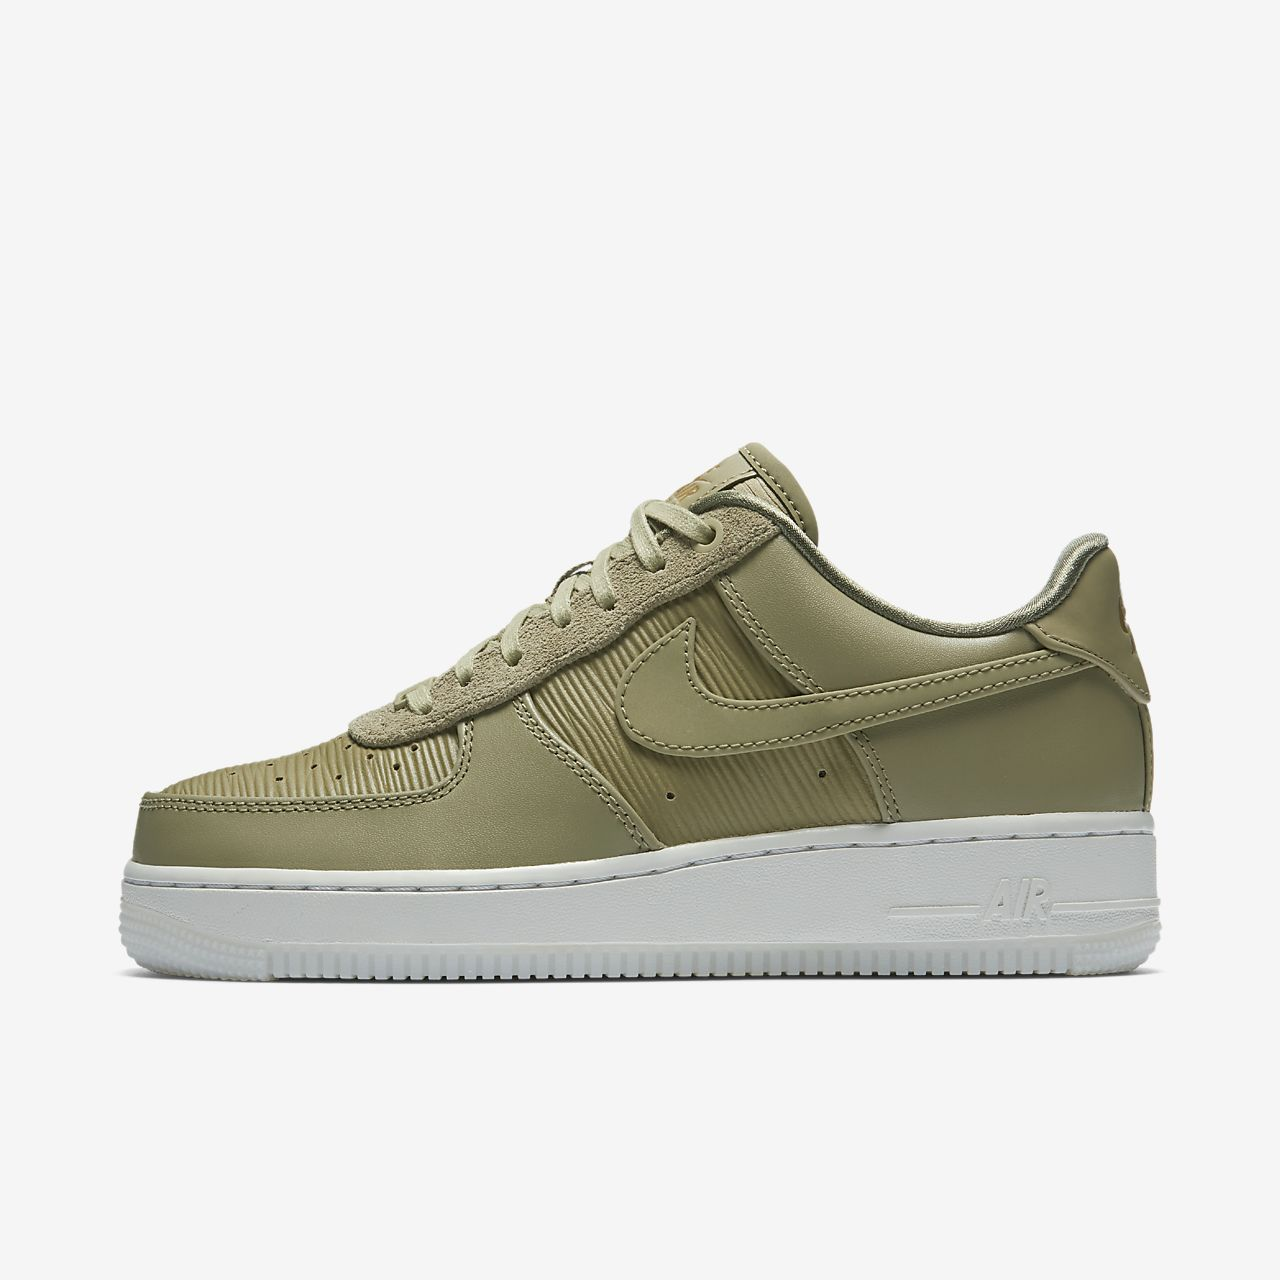 nike air force 1 07 women's shoe black nz